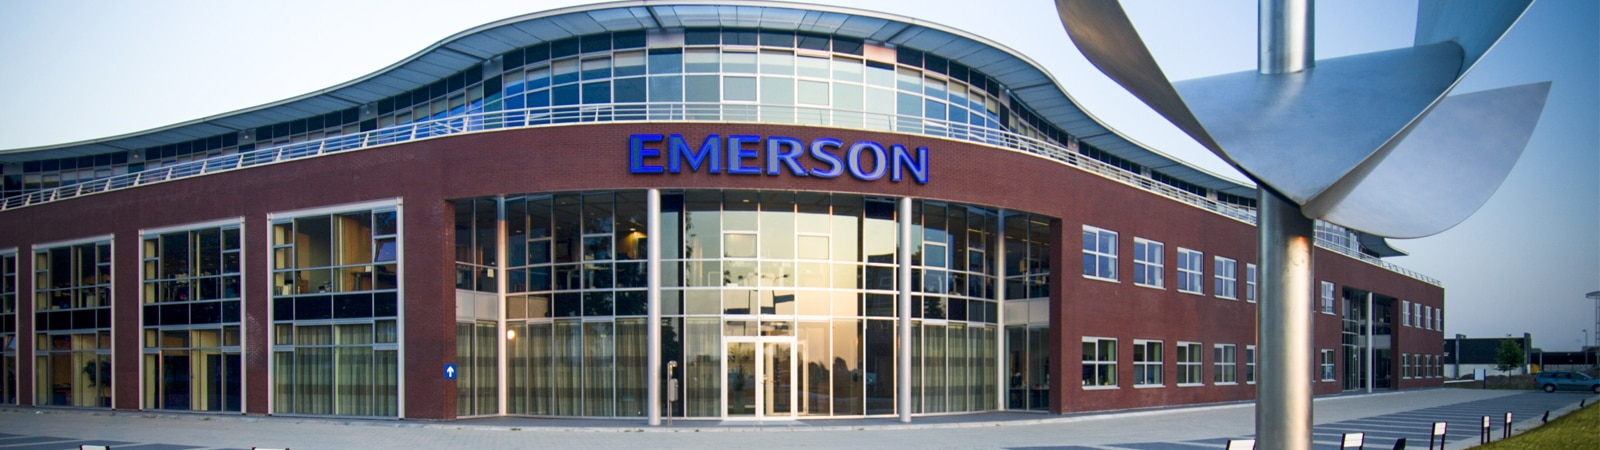 Banner image showing exterior of the Emerson Automation Solutions building.